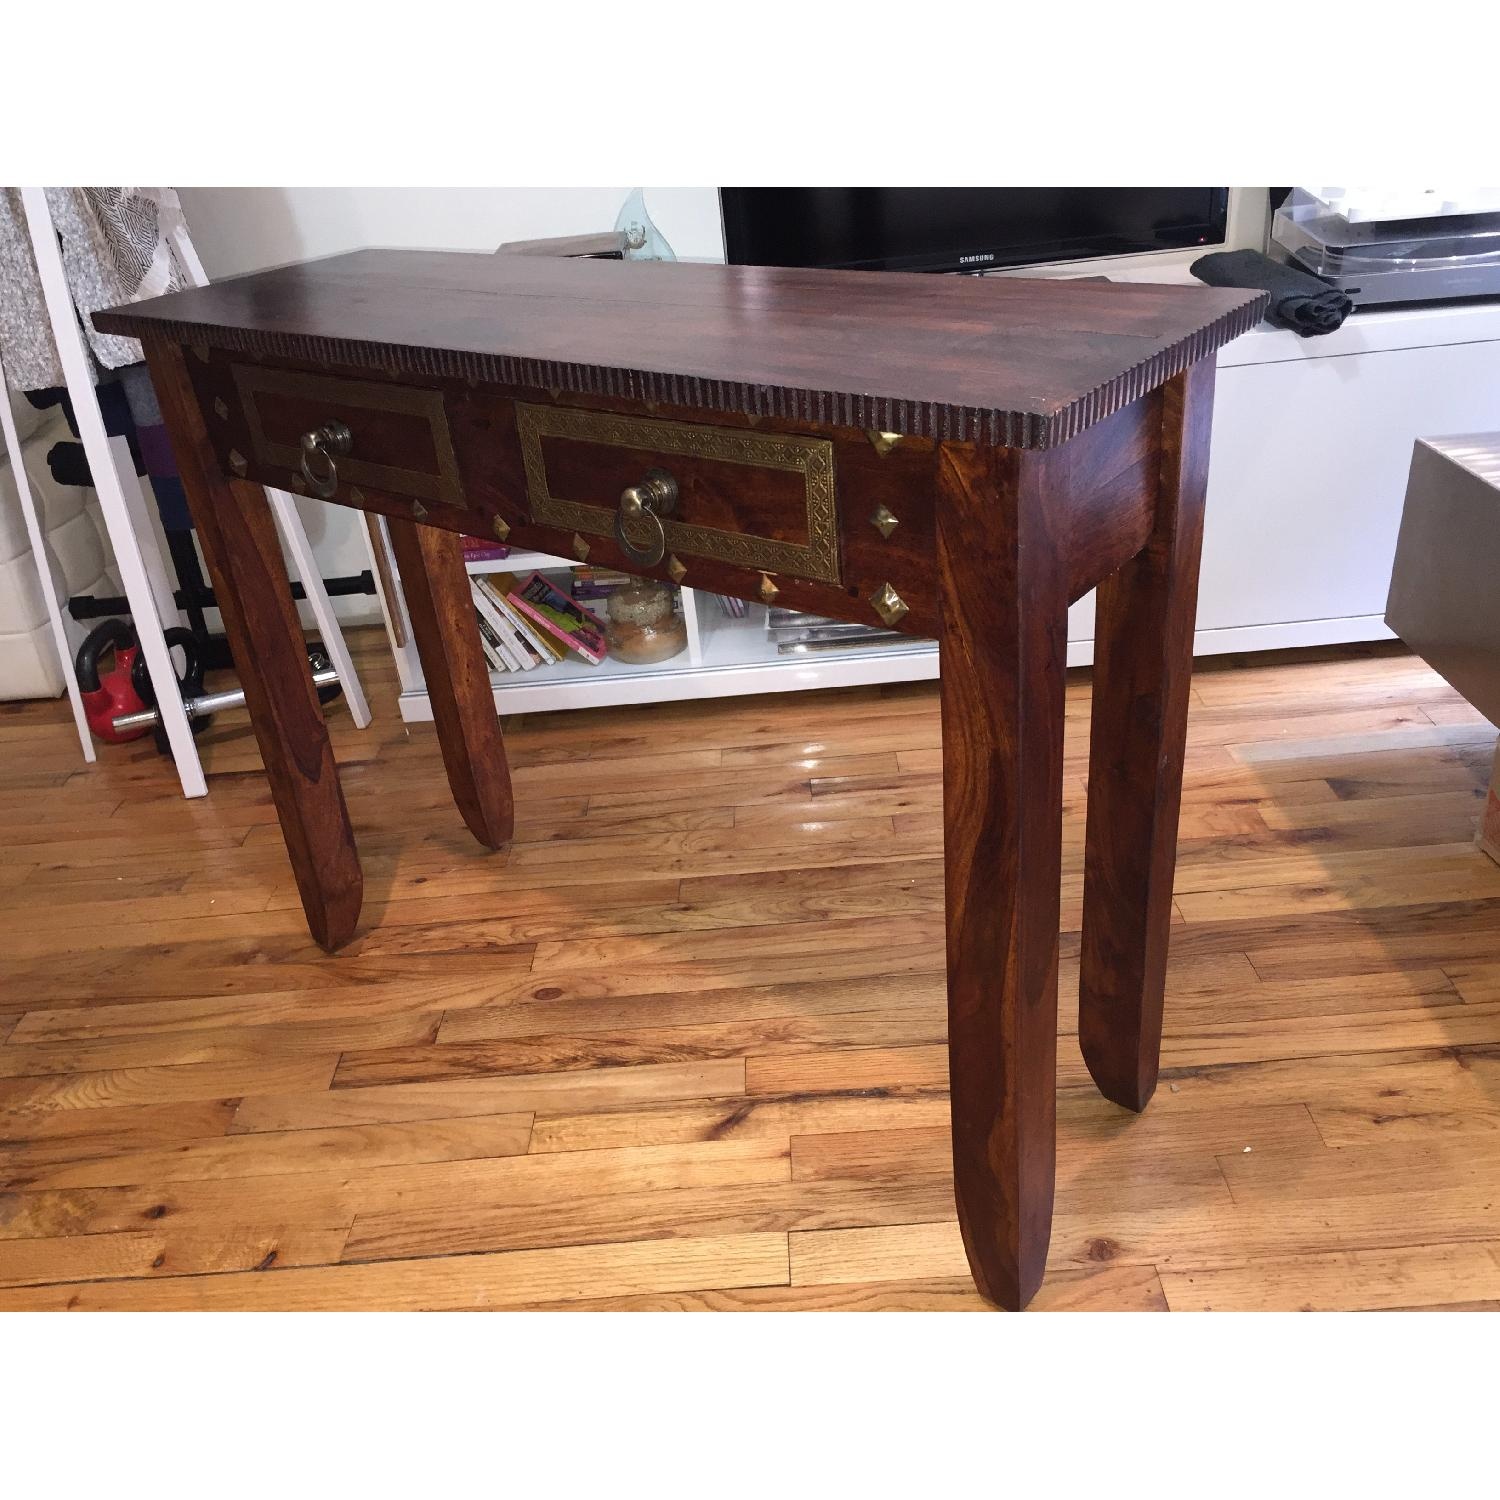 Pier 1 Vintage Heera Indian Handcrafted Console Table - image-2